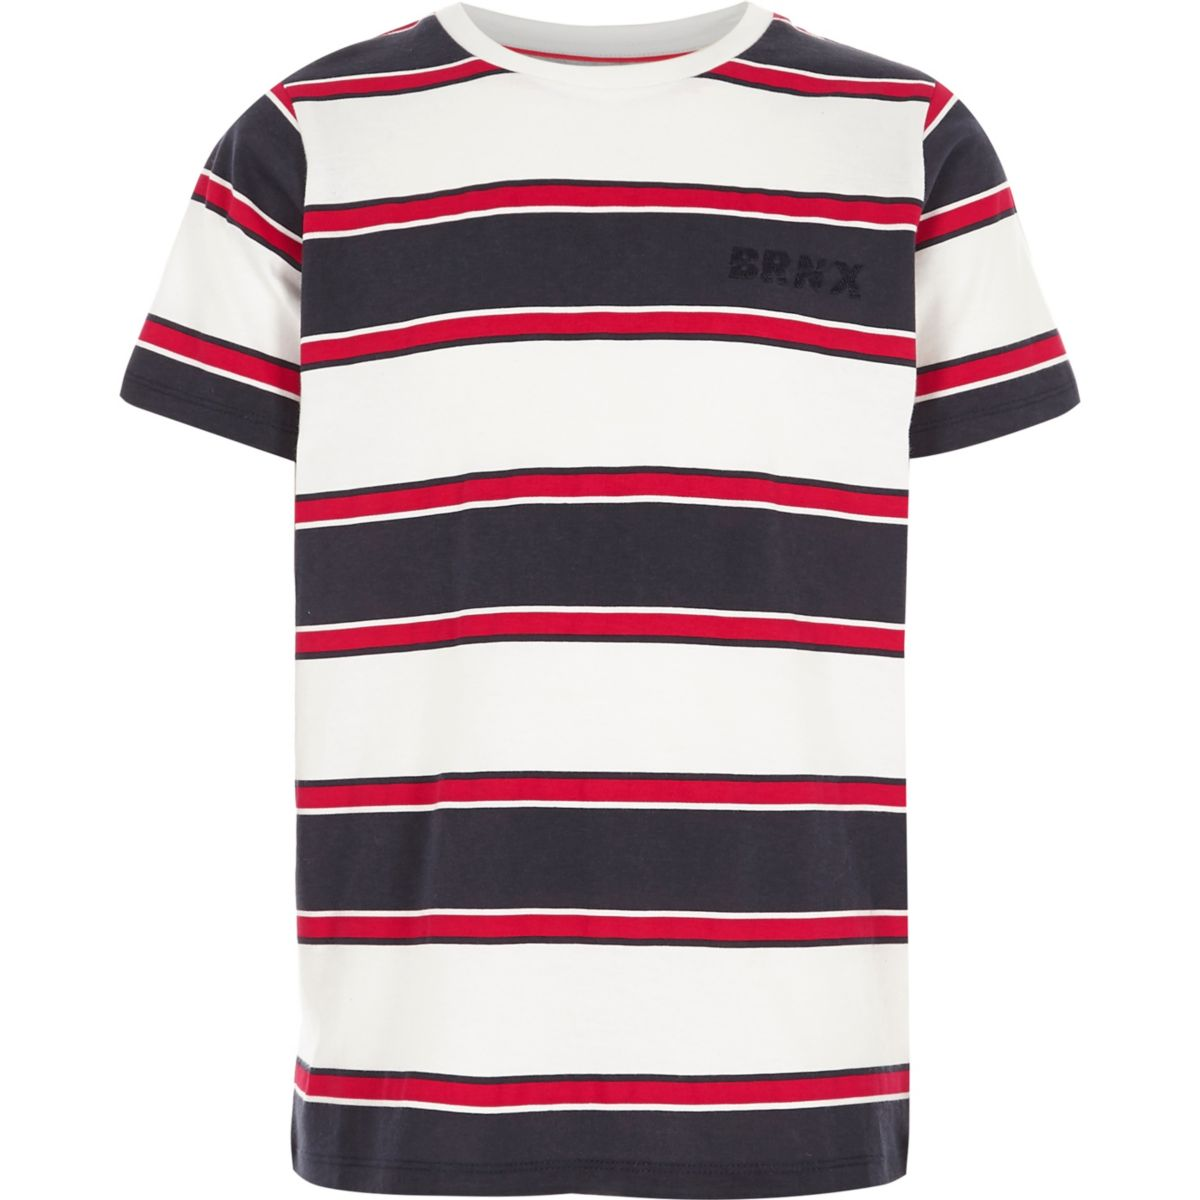 Boys red stripe 'brnx' embroidered T-shirt